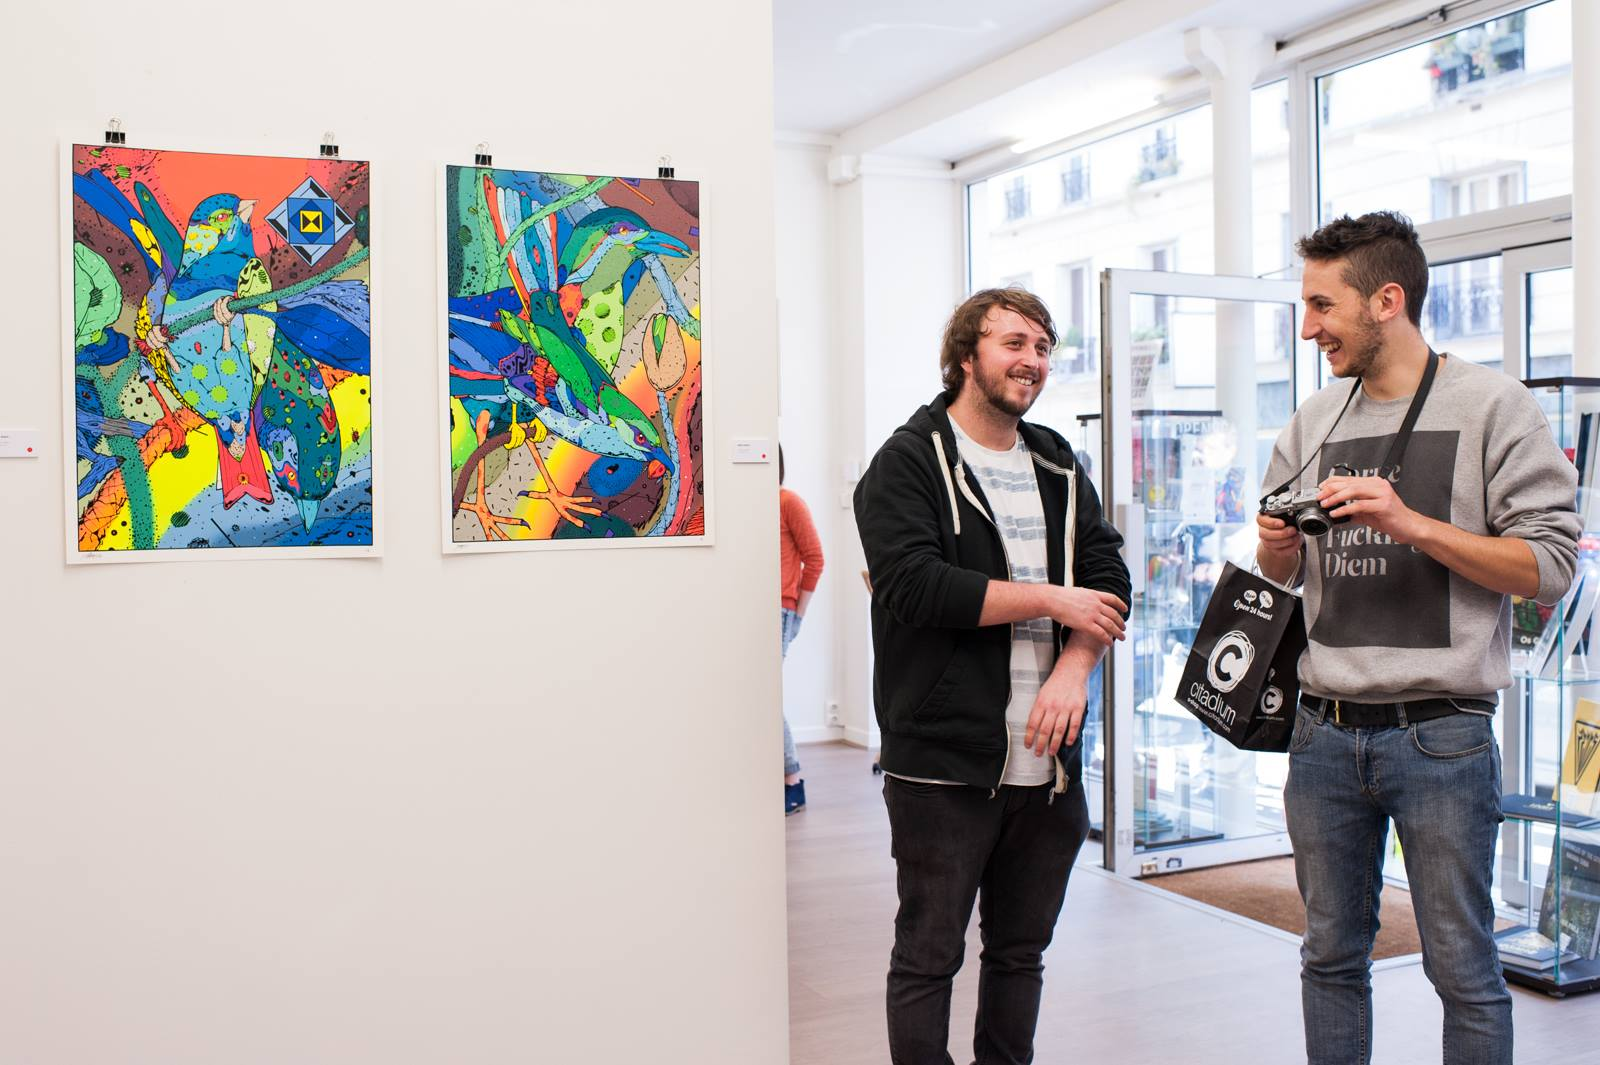 sobekcis-synthesis-at-openspace-gallery-recap-04